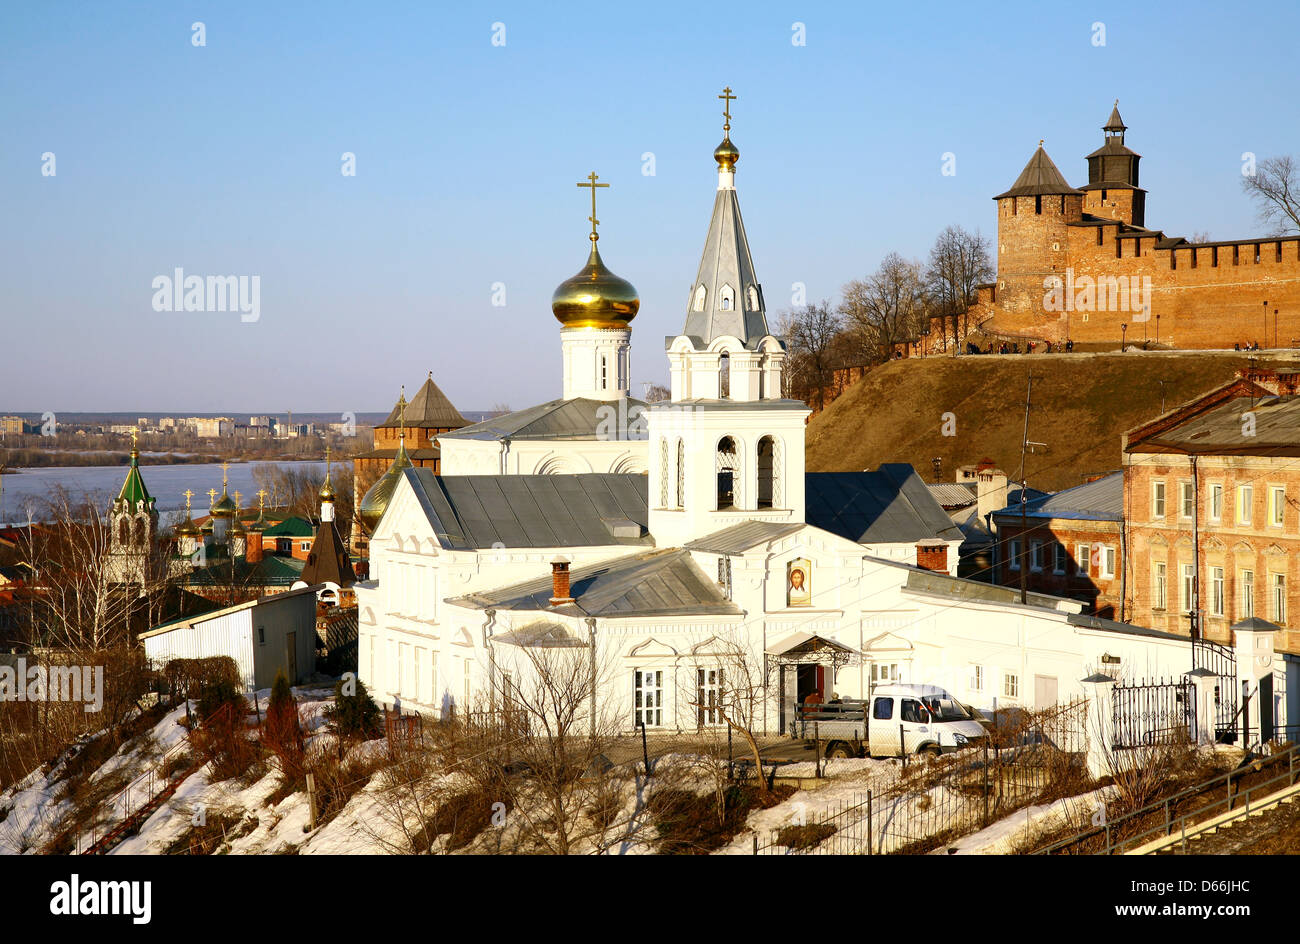 Nizhny Novgorod, Kremlin: history, sights and interesting facts 60